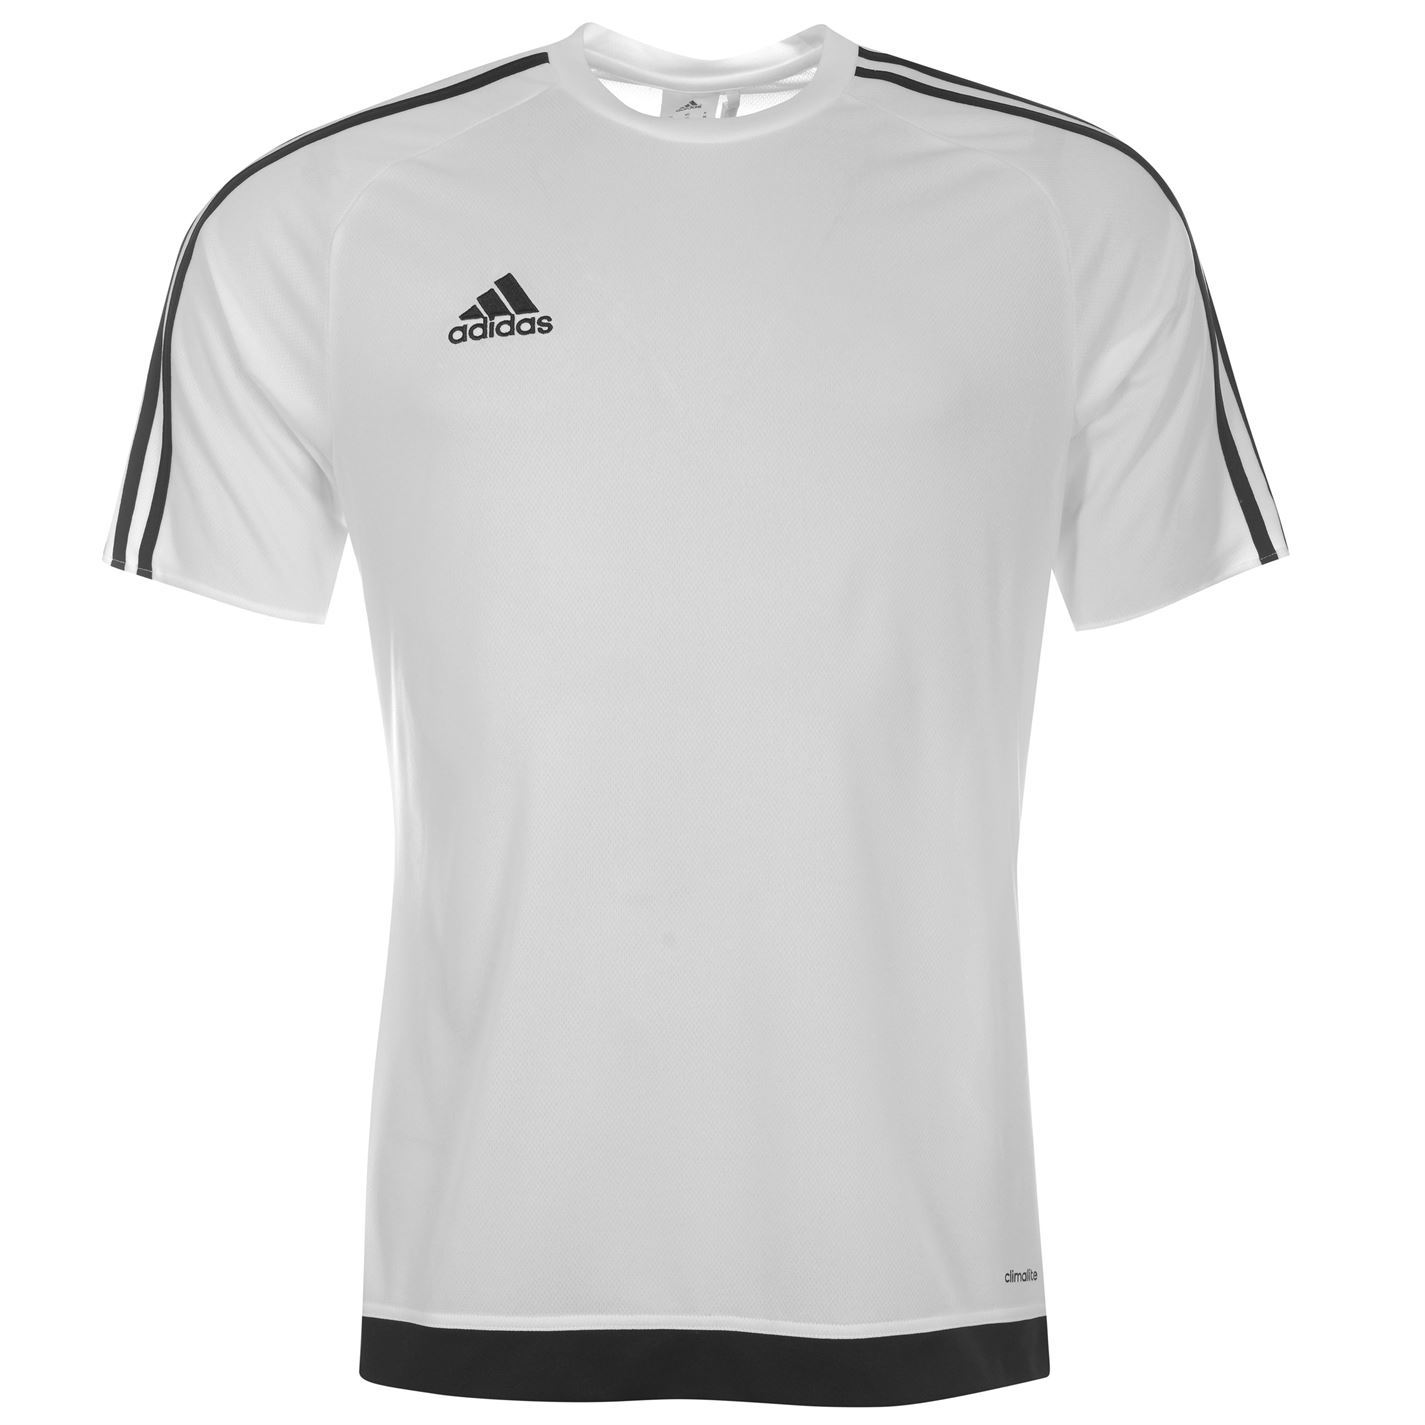 Adidas 3 Stripe Estro Climalite T Shirt Mens WhiteBlack Sports Top Tee Shirt | eBay